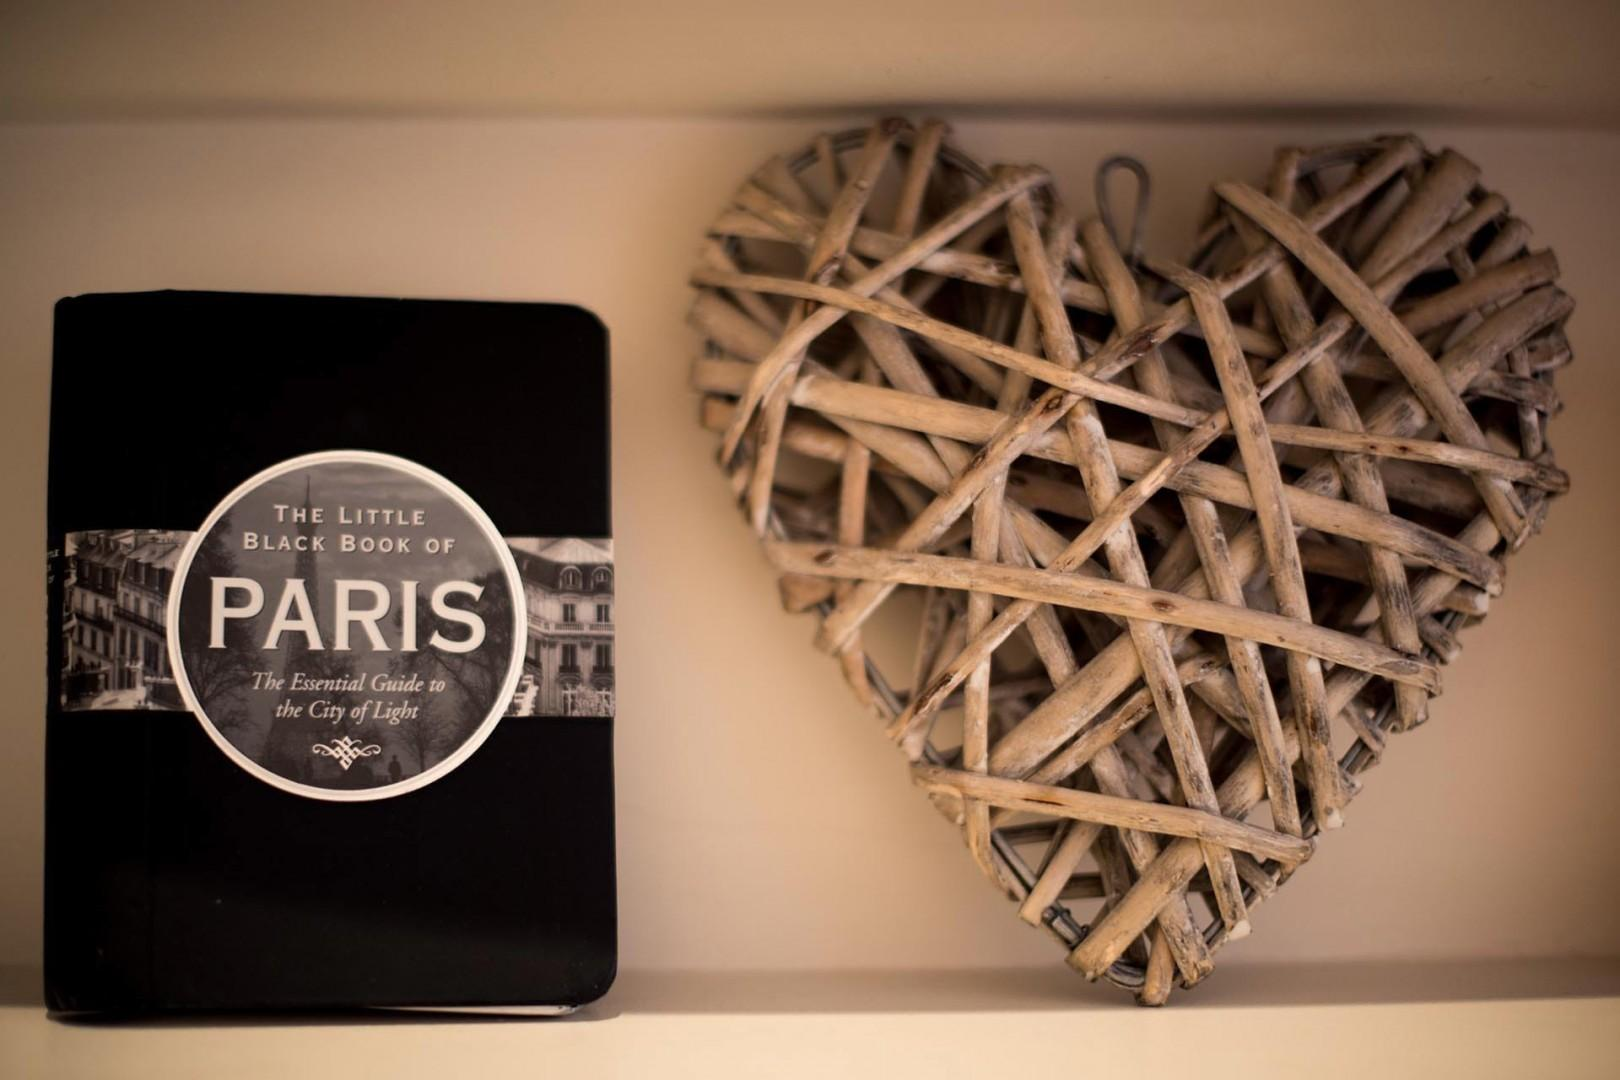 Let the Rully help you fall in love with Paris!